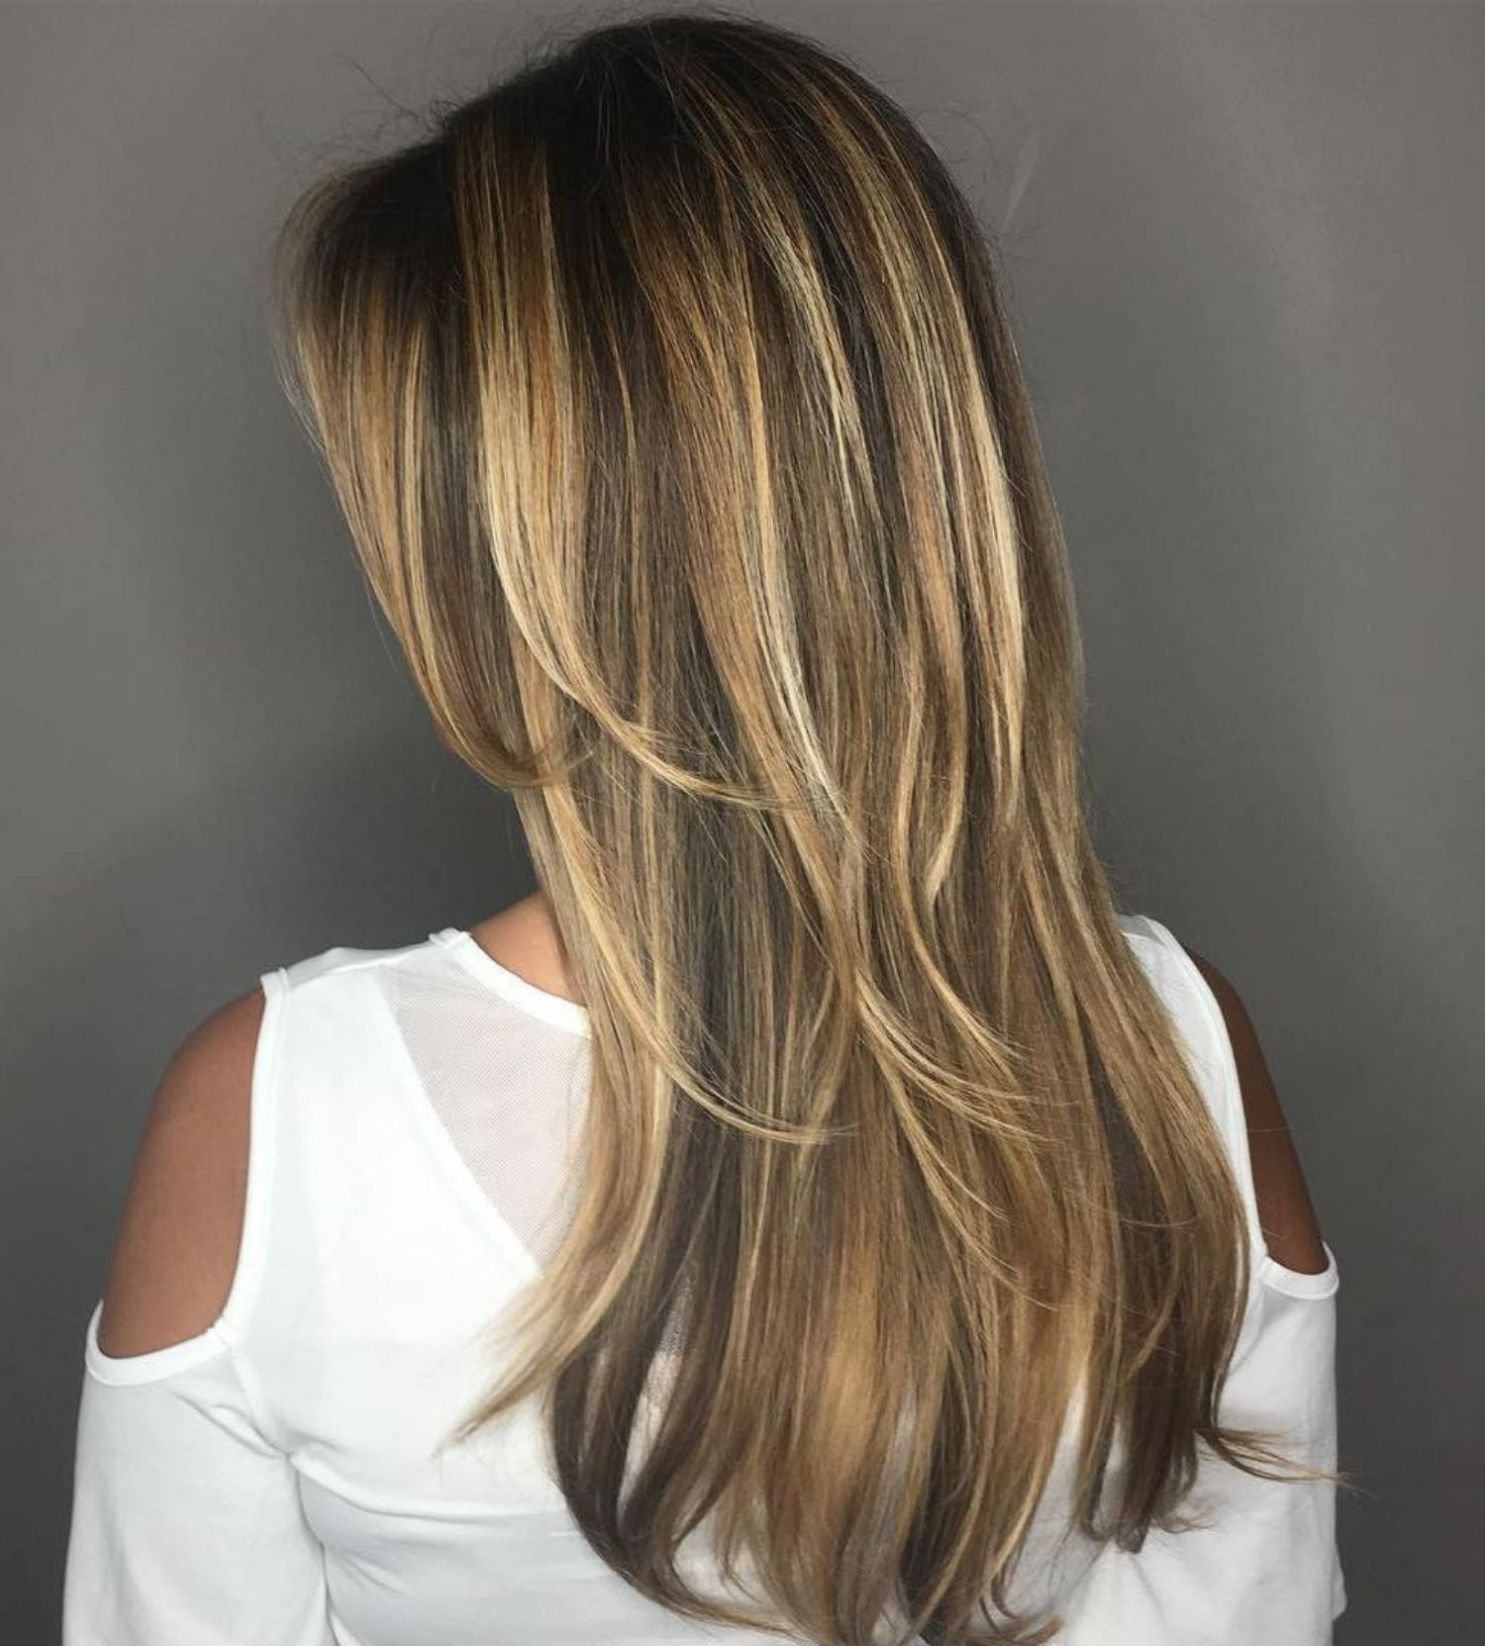 40 Picture-Perfect Hairstyles for Long Thin Hair in 2020 ...